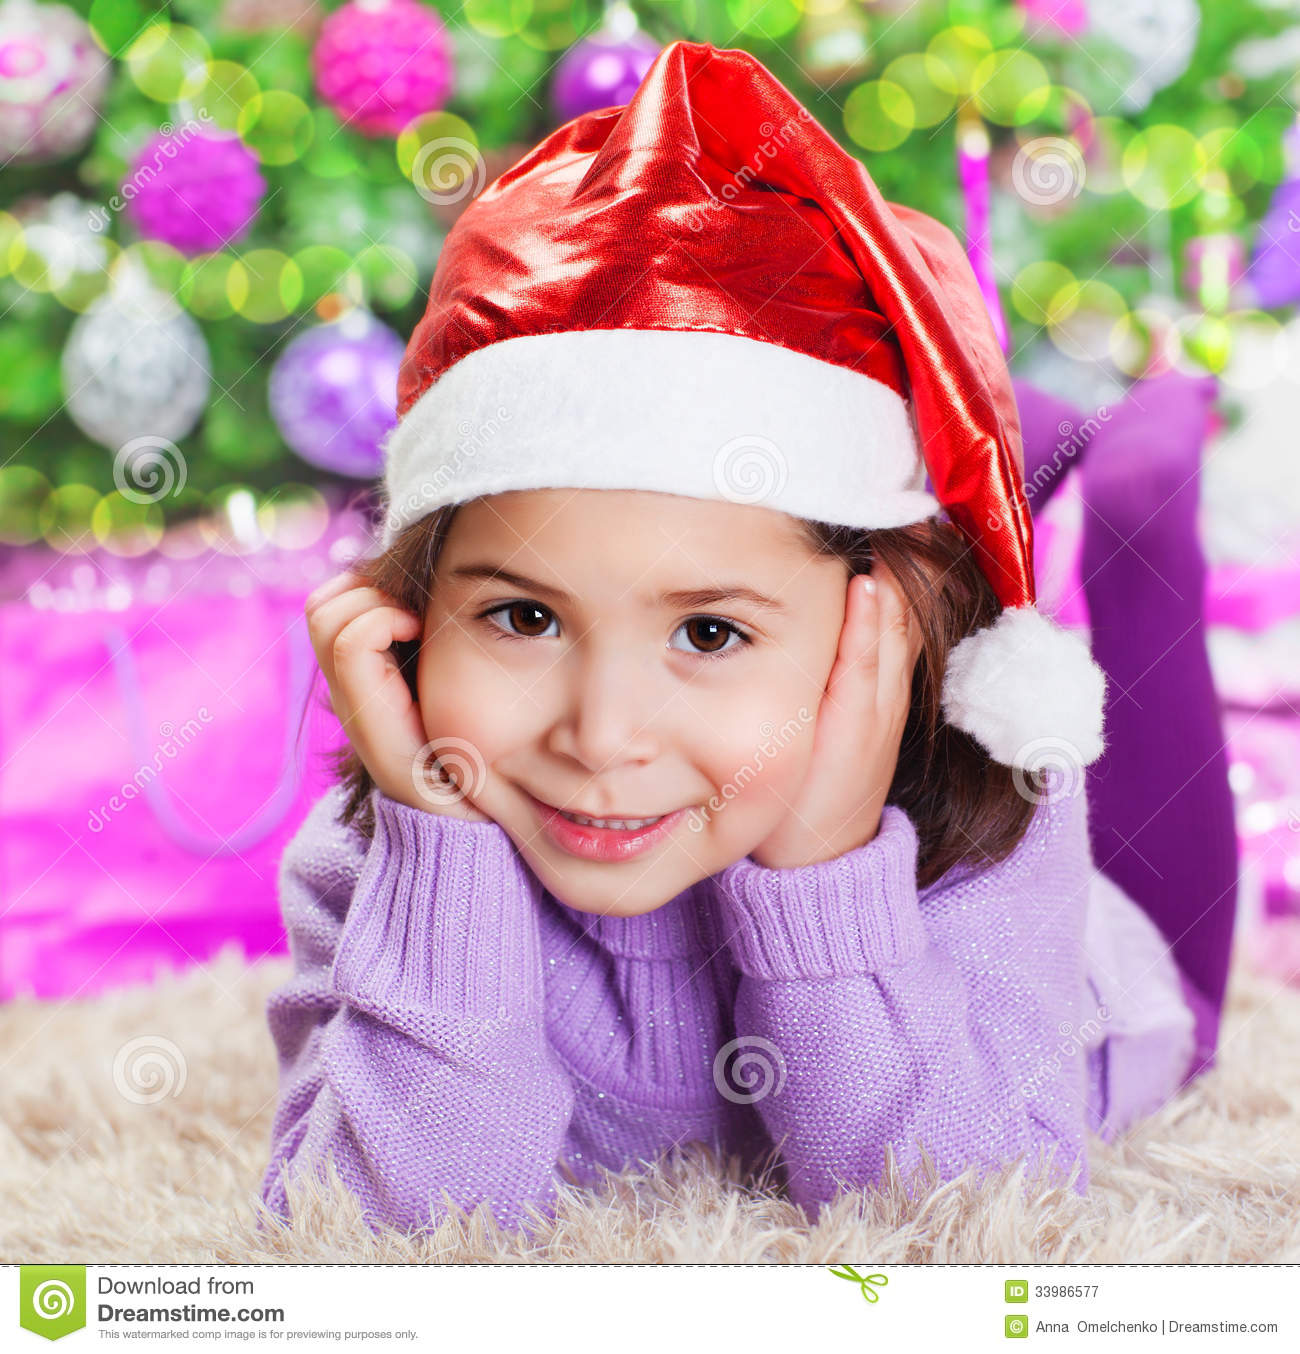 Little Girl Christmas Tree: Little Girl Near Christmas Tree Stock Image